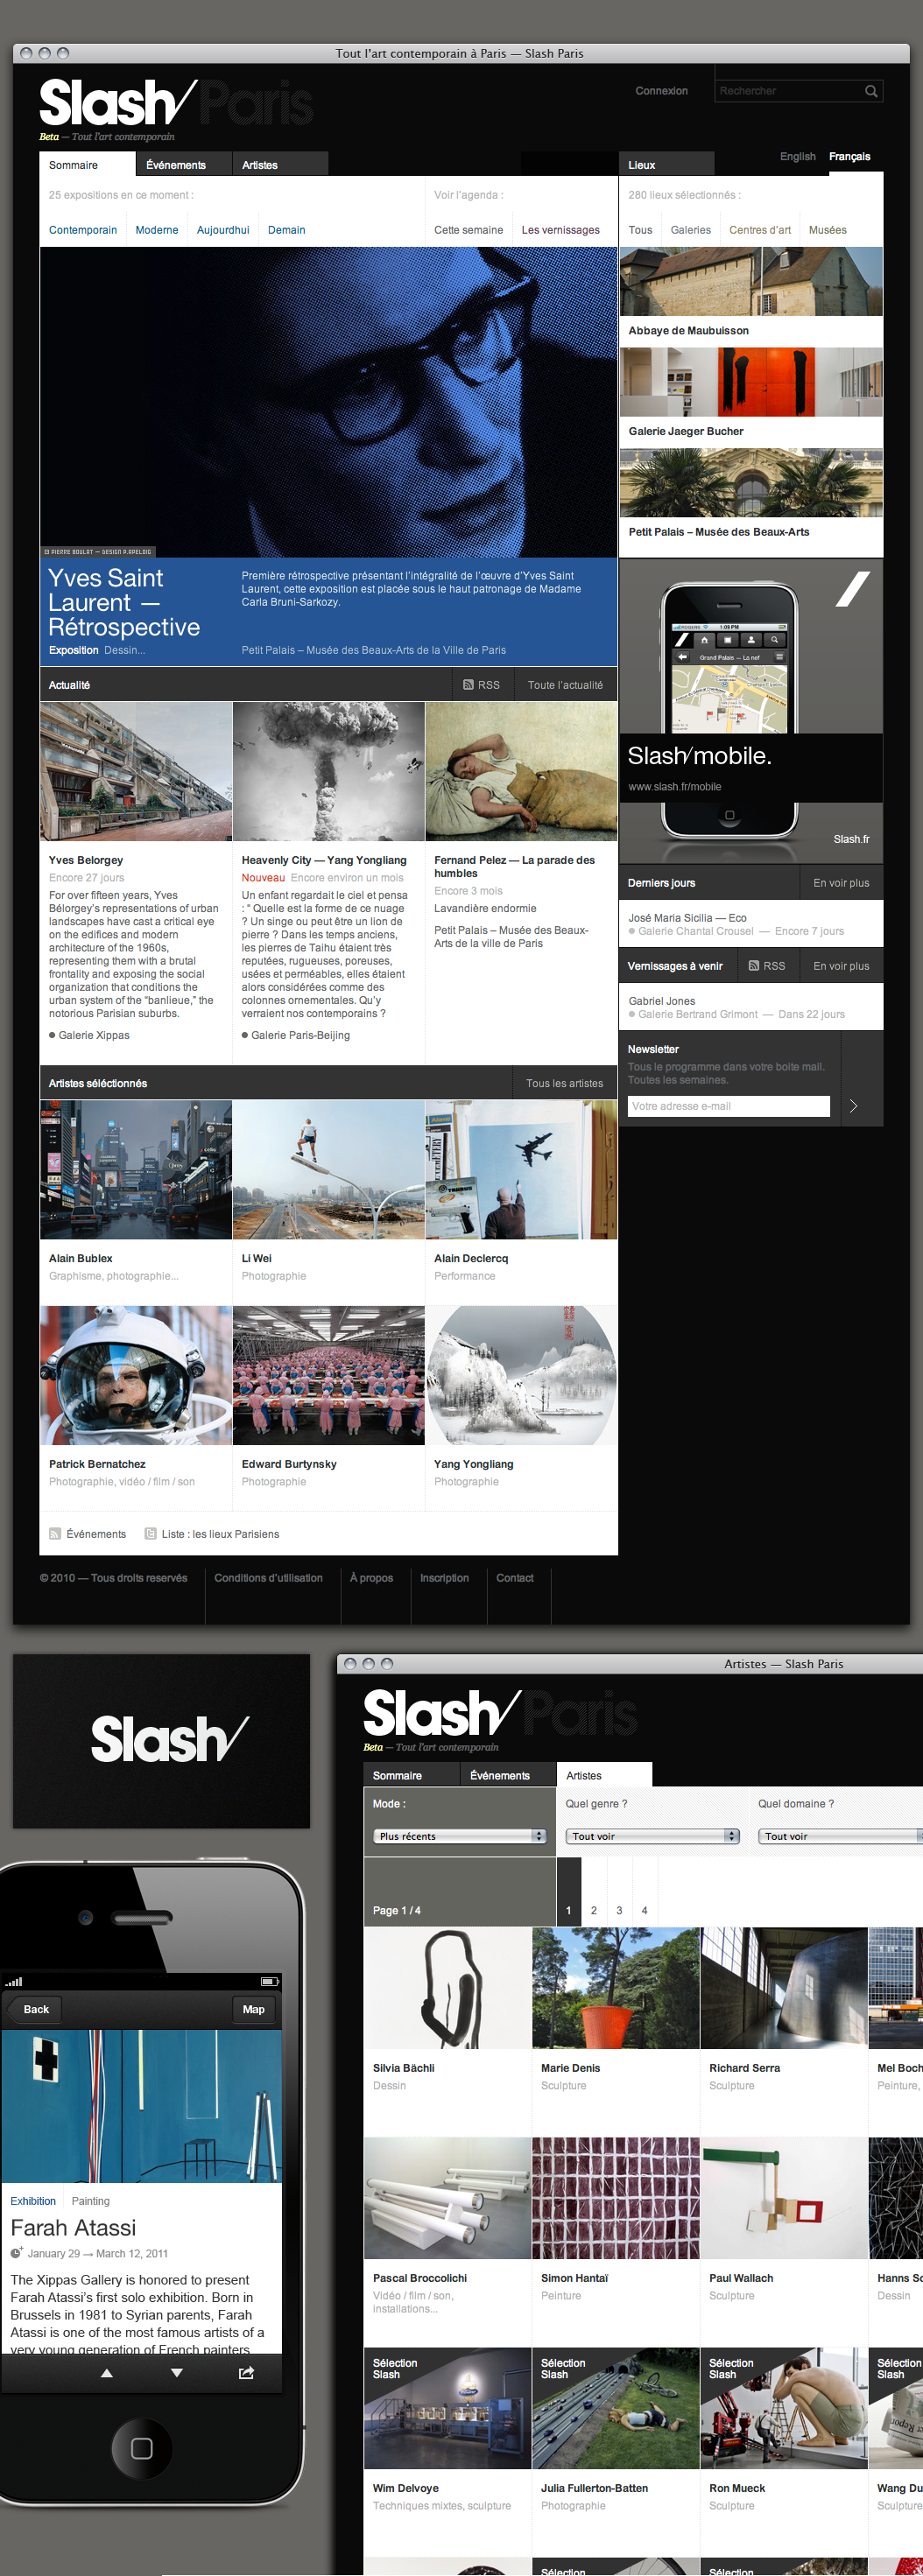 Slash Brand, Website and Mobile — Work — AREA 17